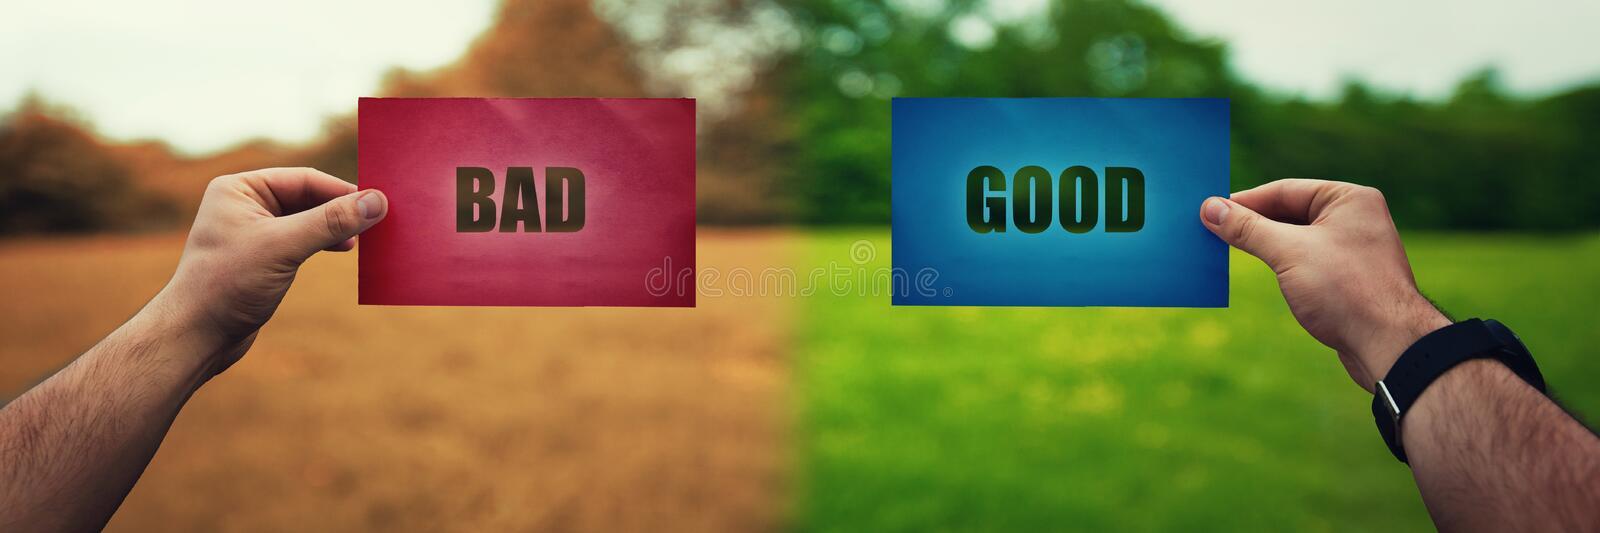 Man hands holding two colored paper sheets with opposite text good and bad over different nature environment background. Life stock photo